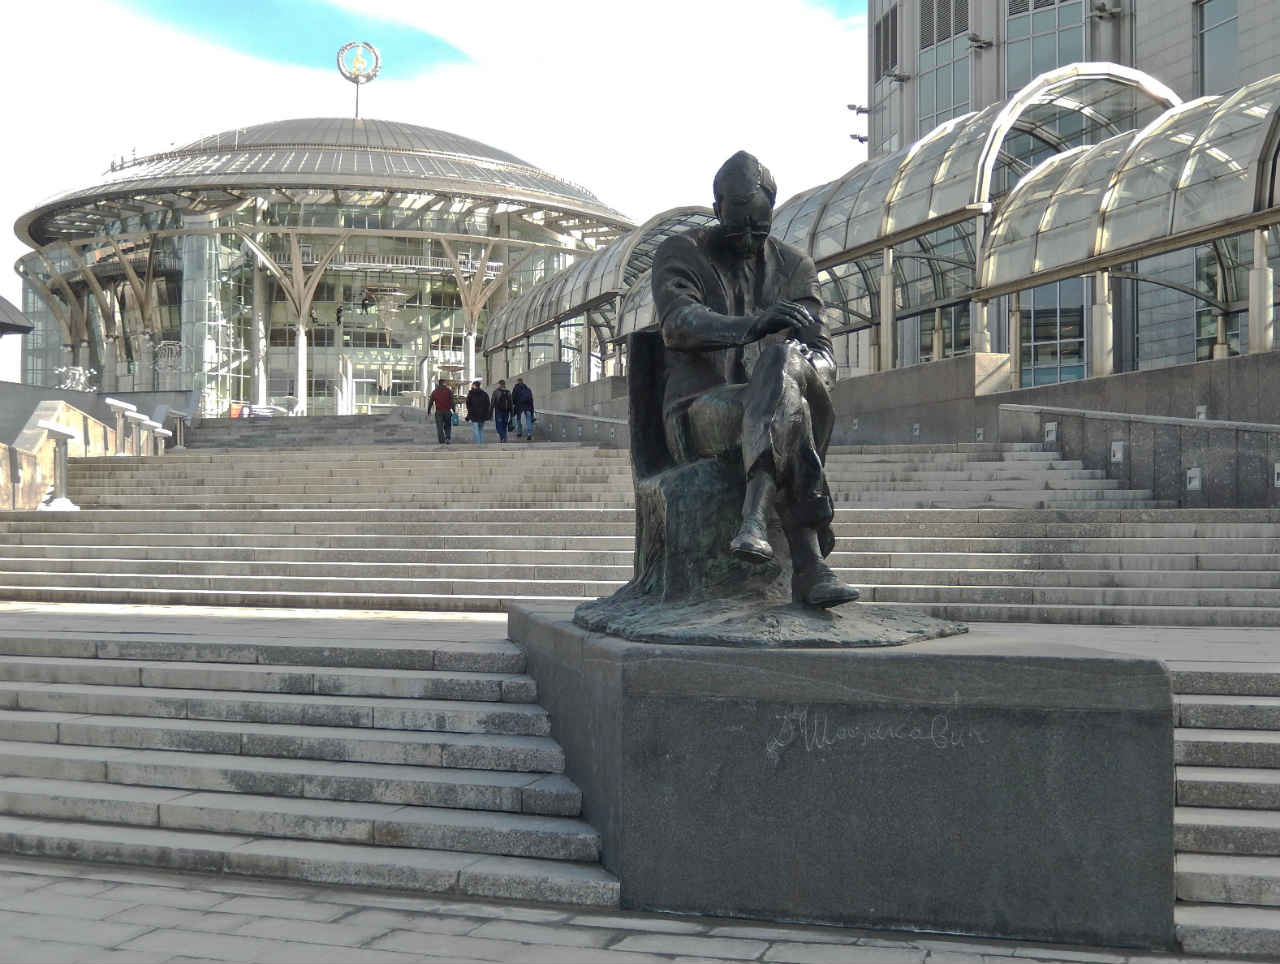 Monument to Brodsky in Moscow - a monument to the era